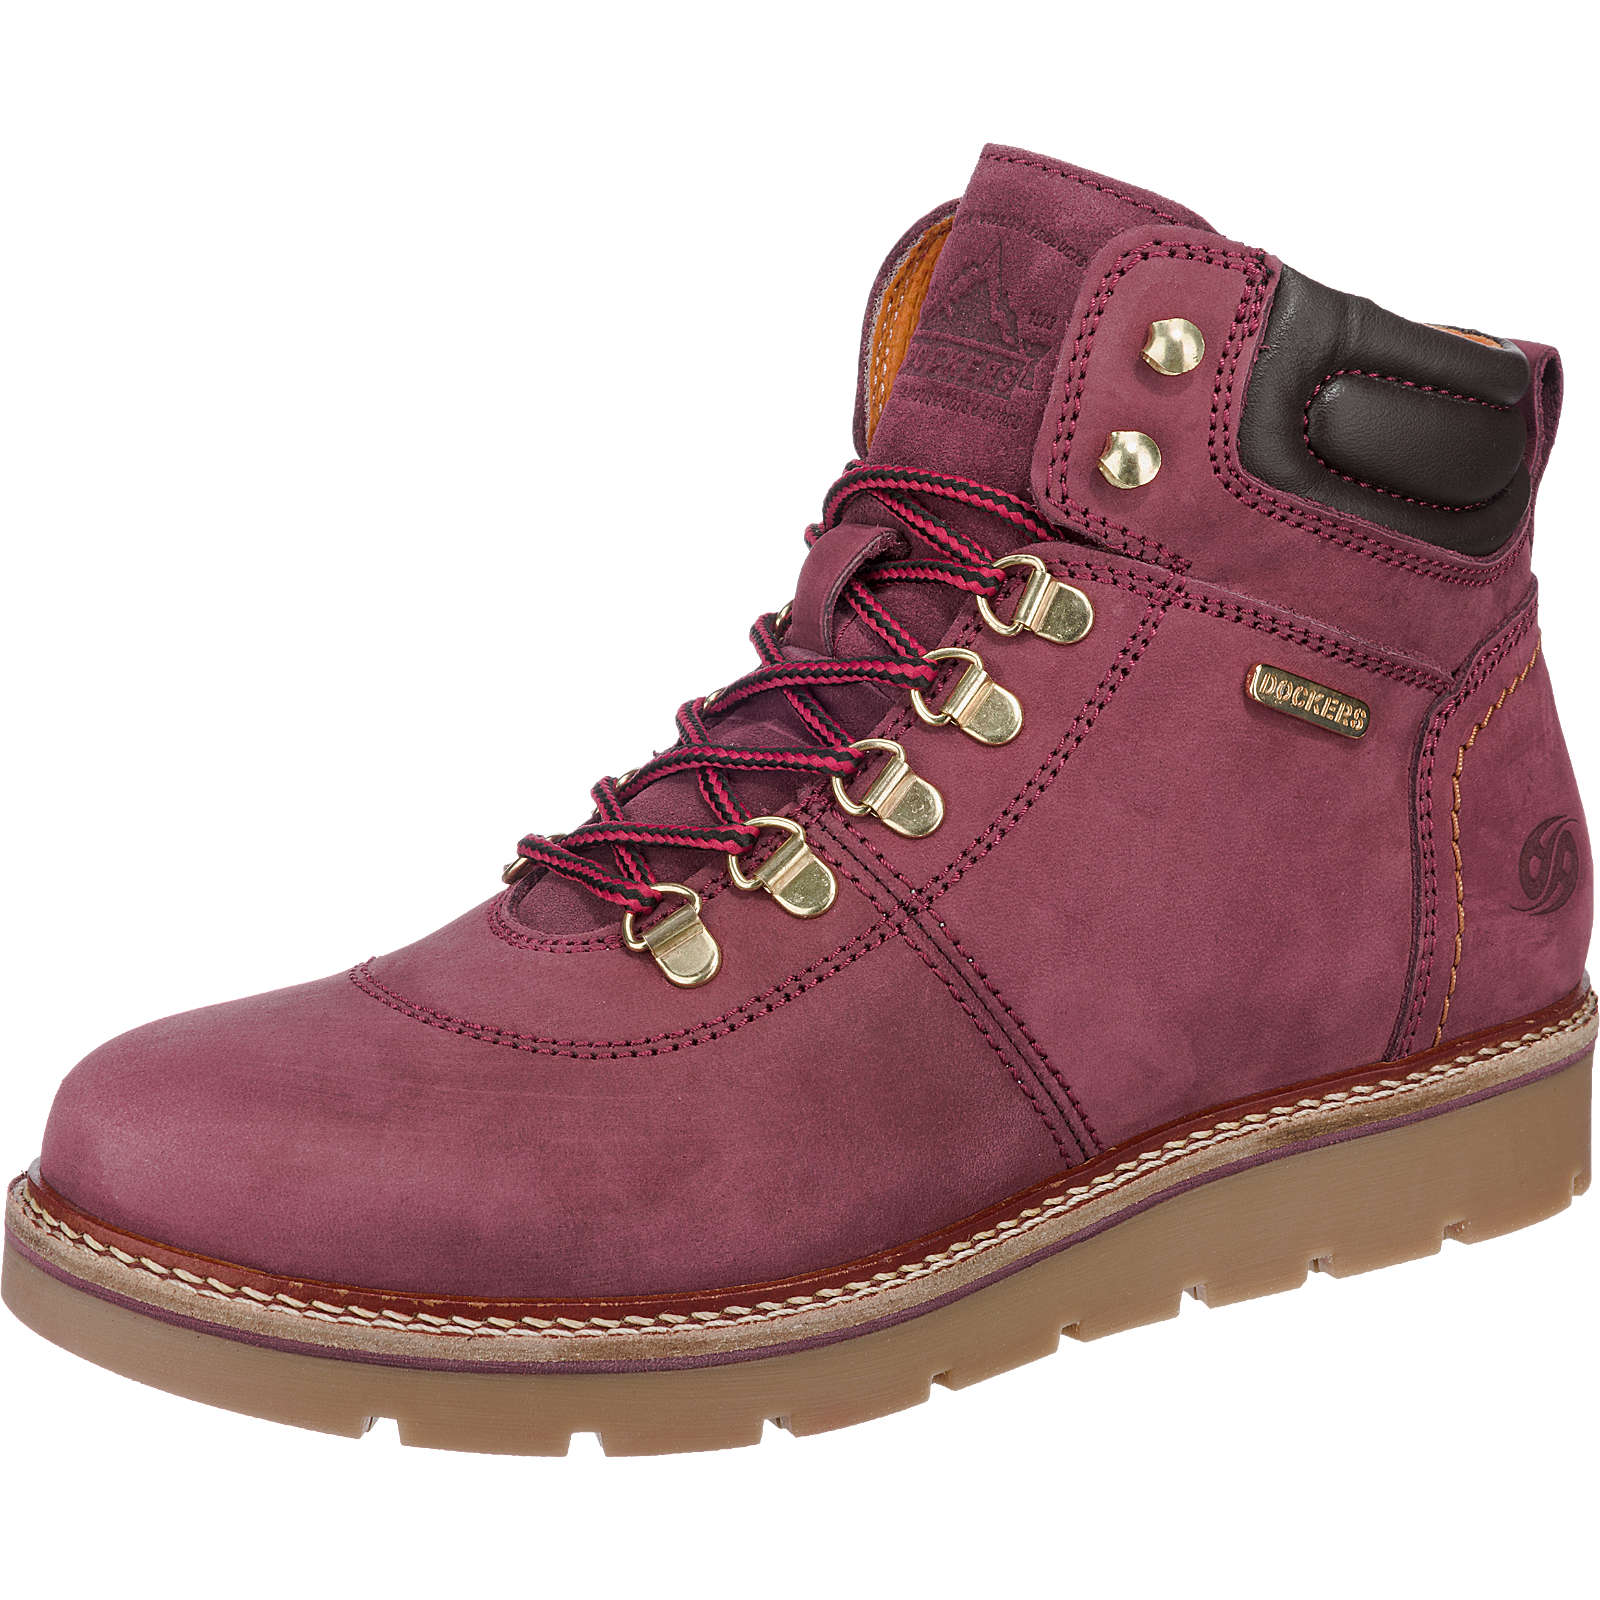 Dockers by Gerli 41JU204-300730 Stiefeletten bordeaux Damen Gr. 37